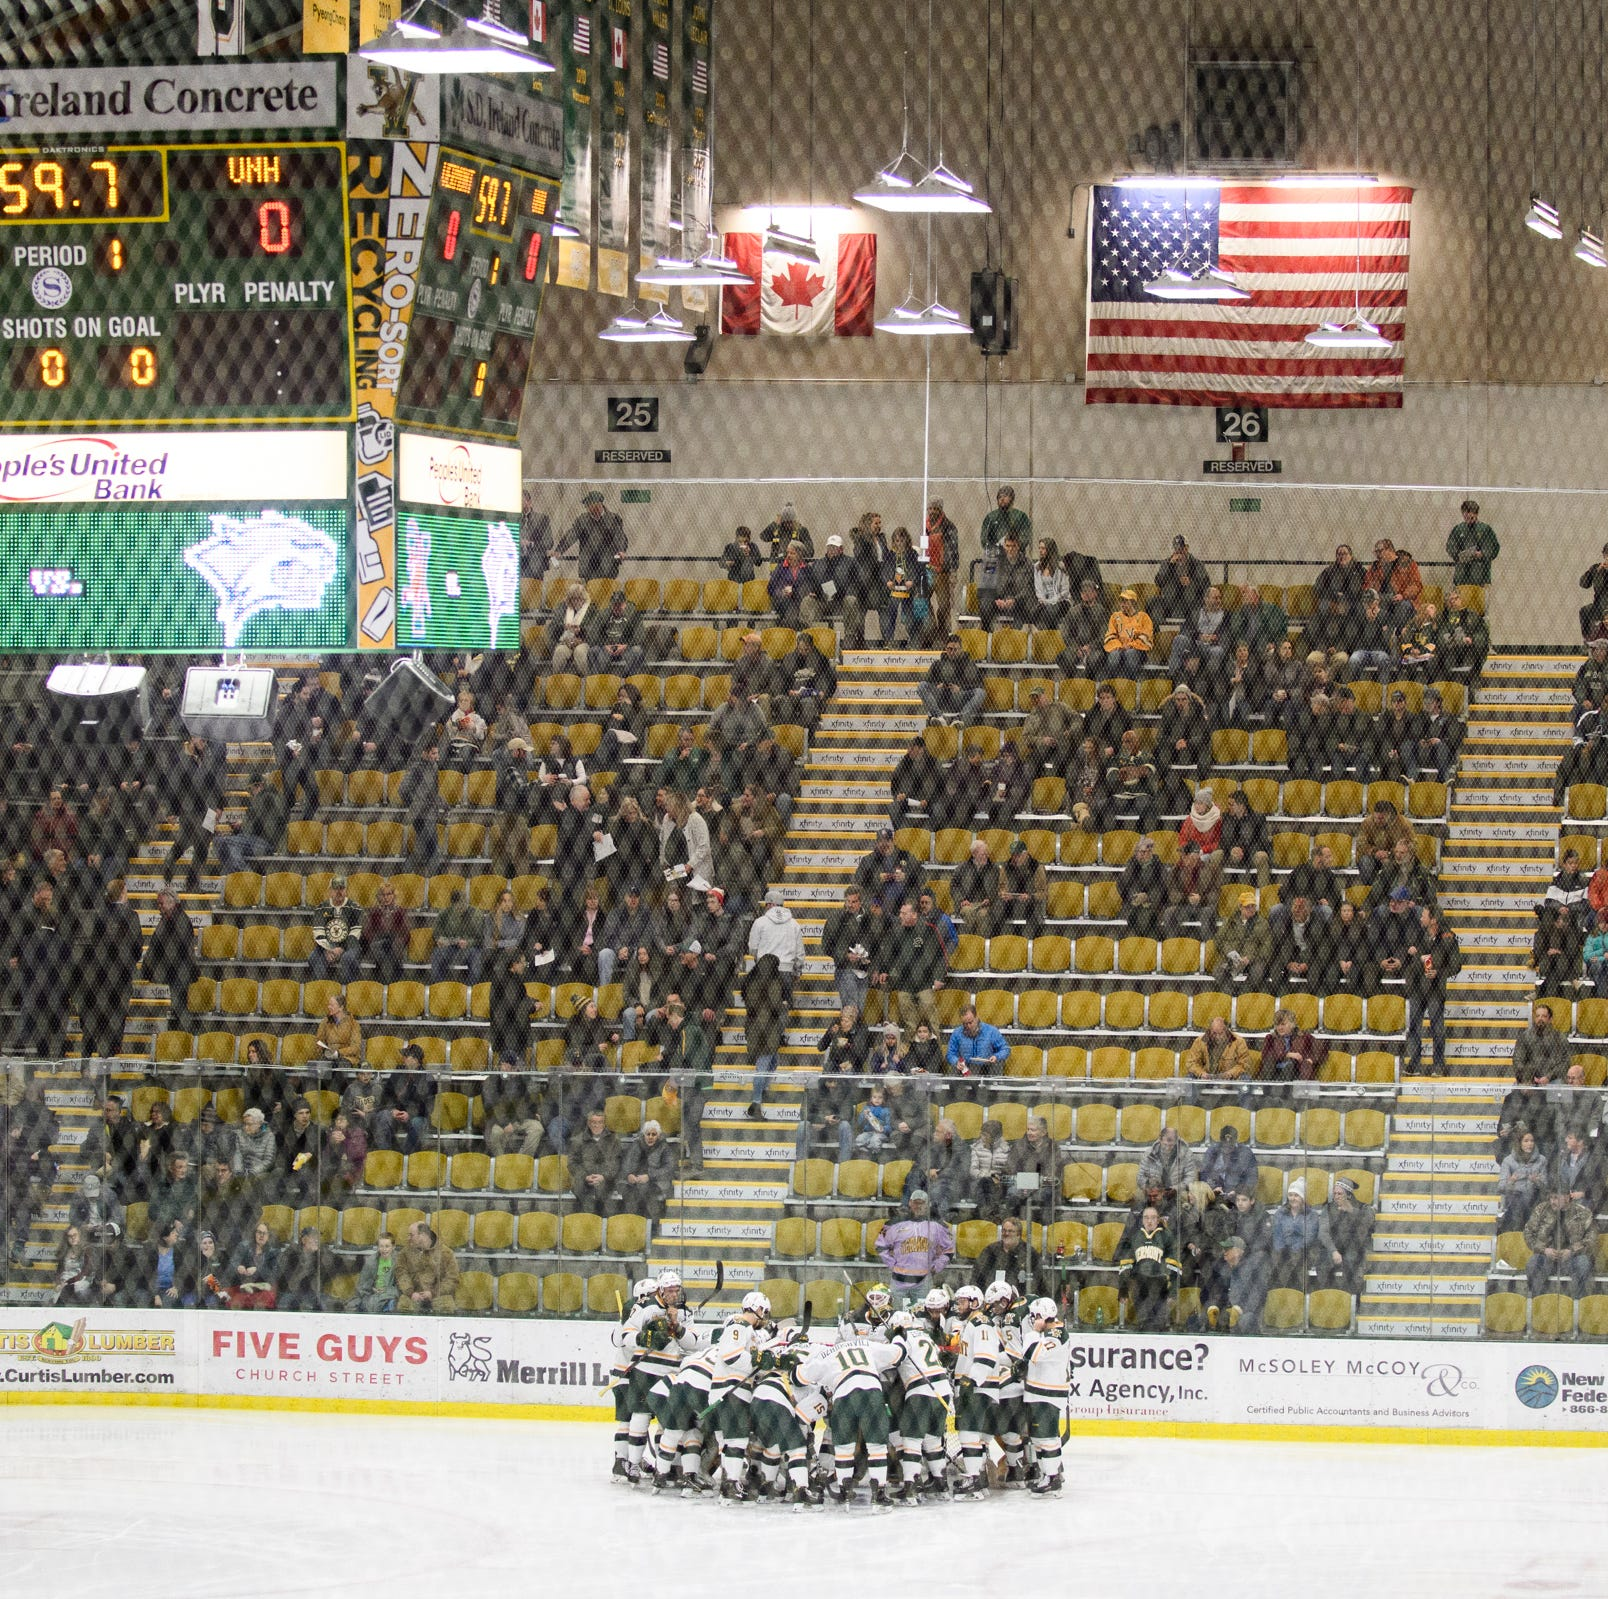 UVM hockey: Overtime loss to BU snuffs out Vermont's playoff hopes